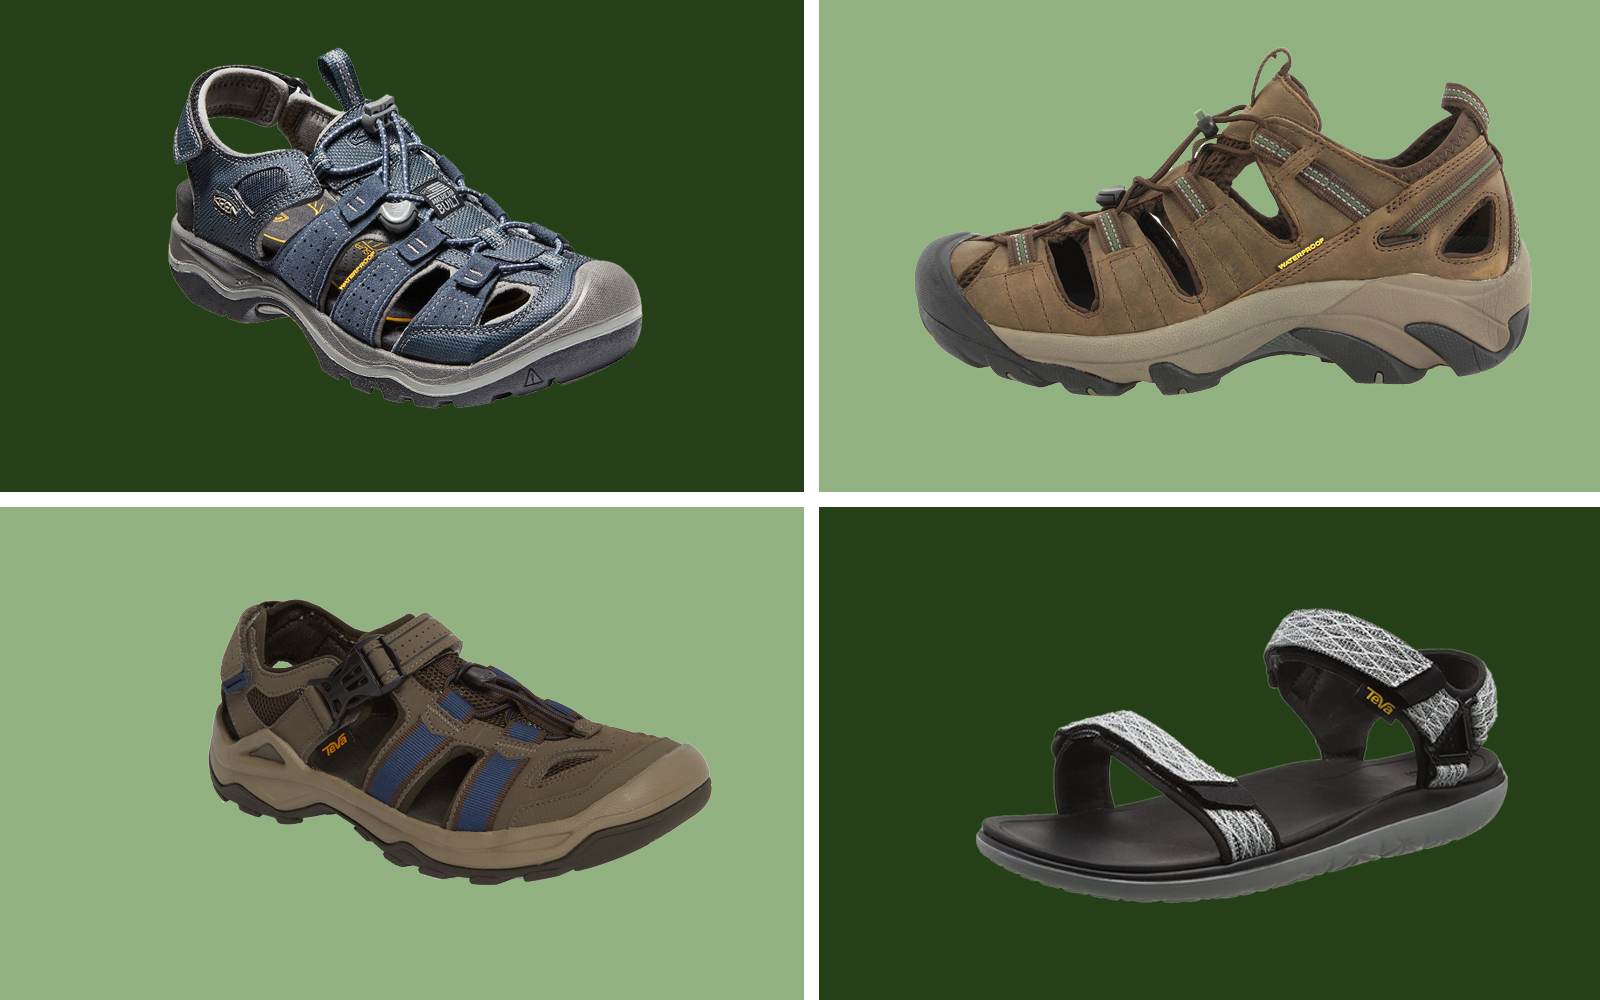 The Best Hiking Sandals for Men for